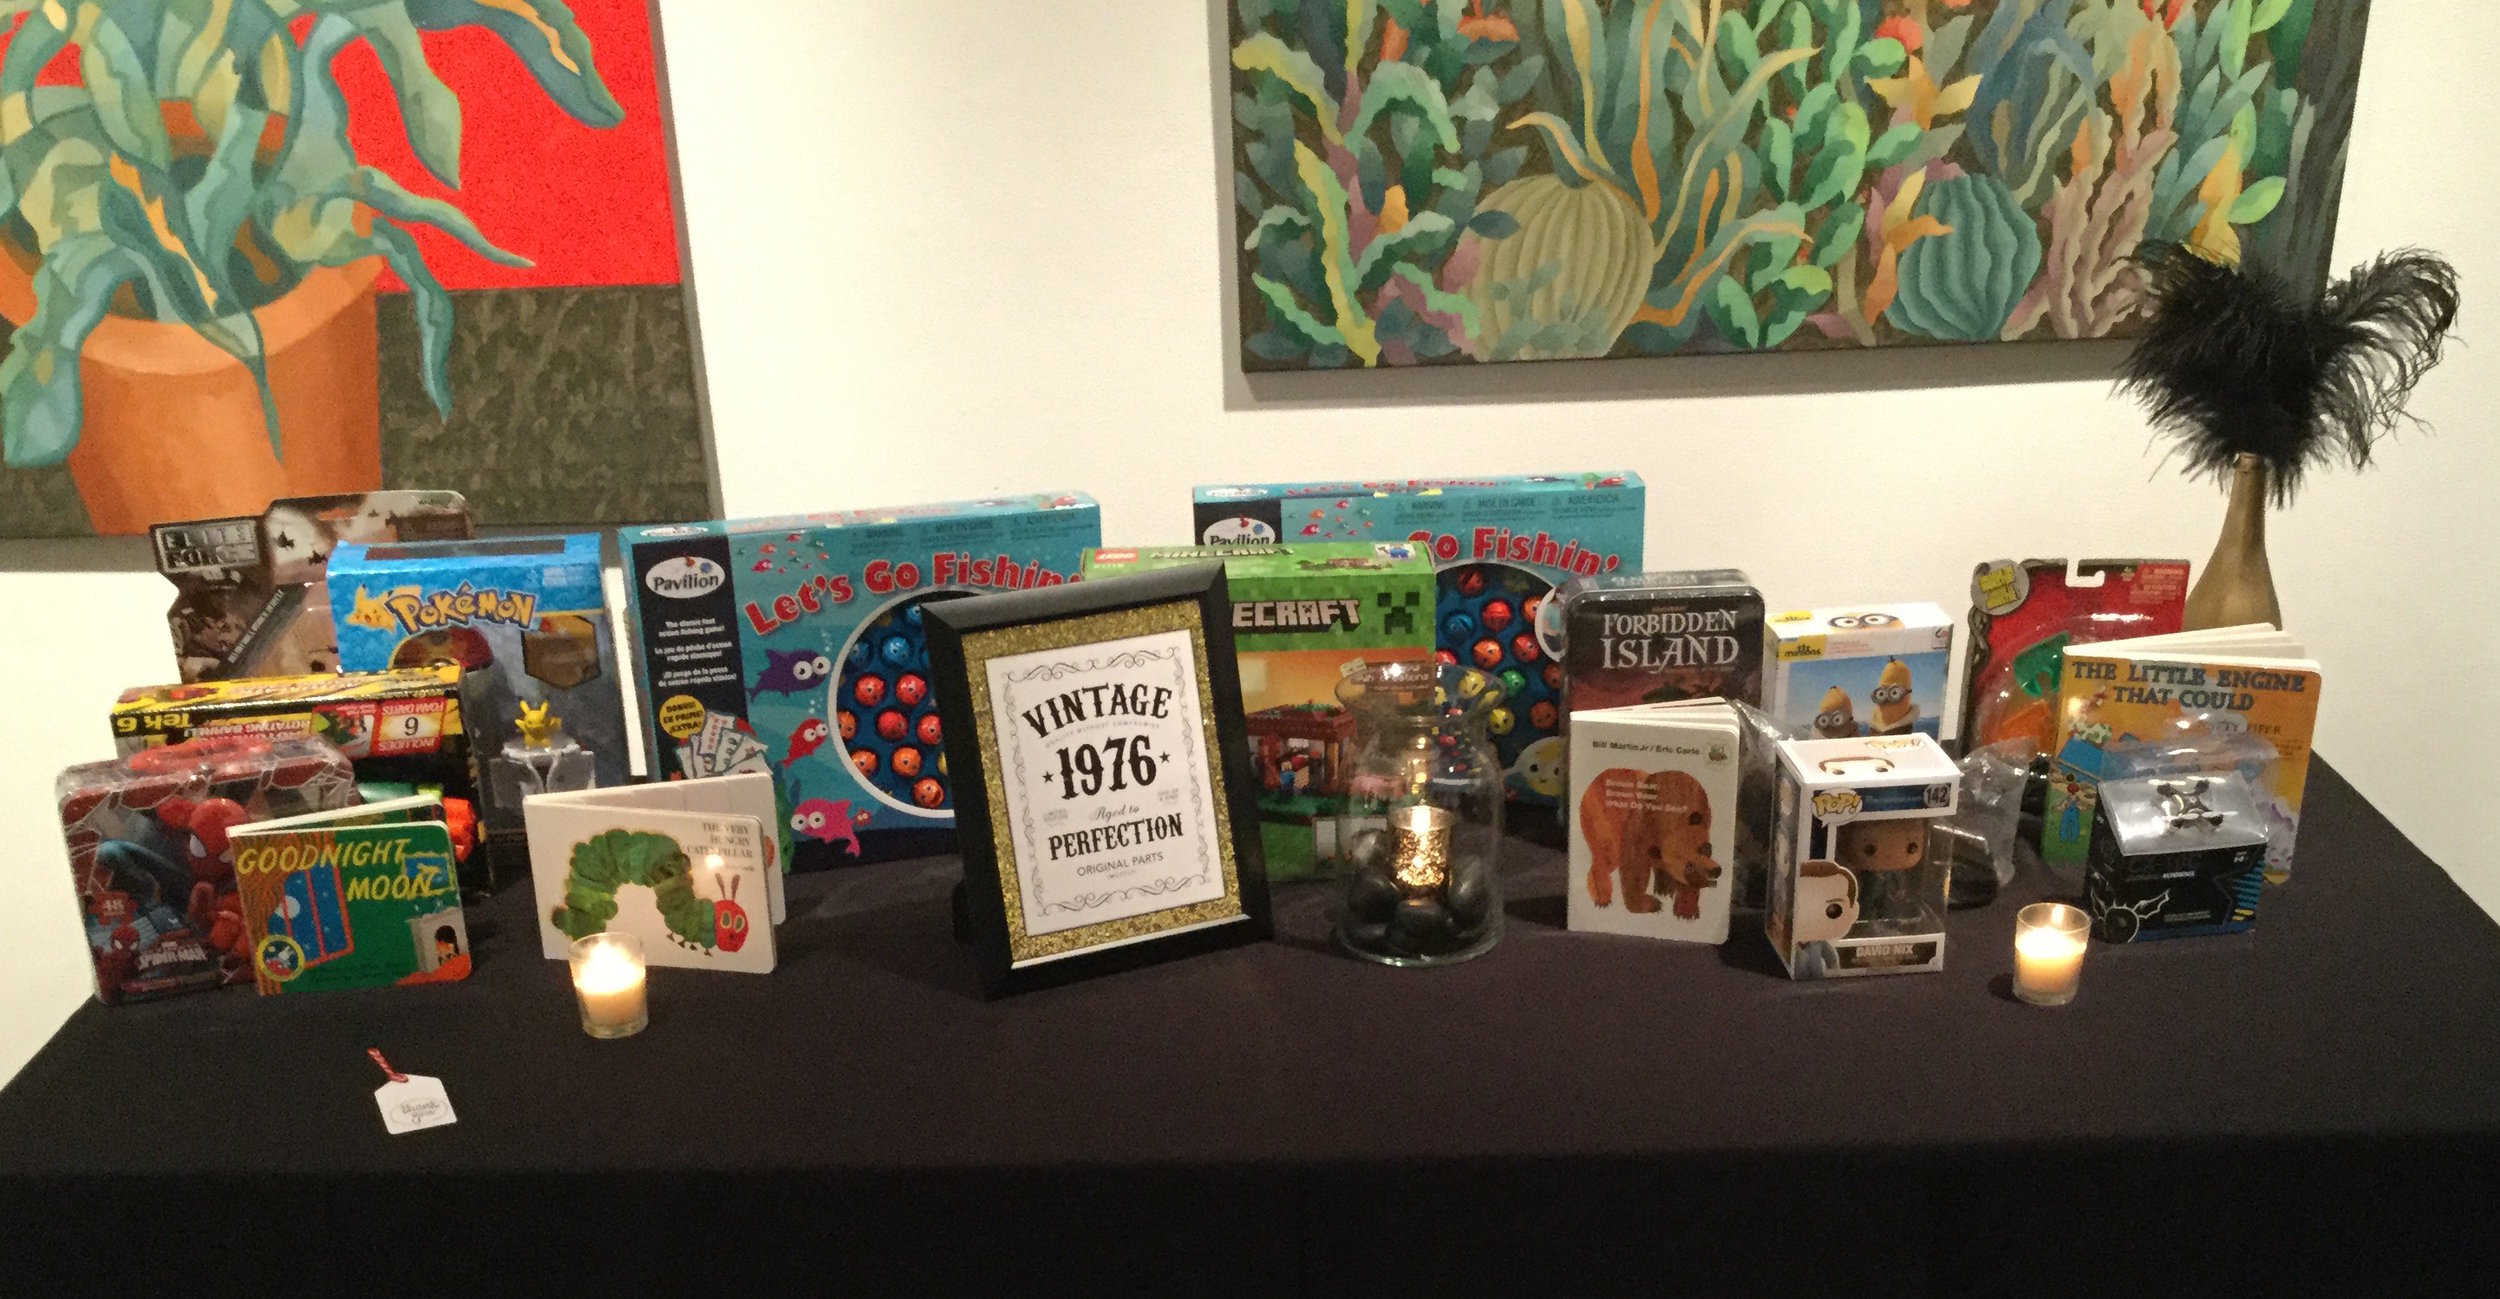 40th Birthday   Venue:  The Liberty Art Gallery & Event Space, Long Beach  In lieu of a gift, this gentleman had guests bring a toy to donate to Toys for Tots!   Over The Moon Package: Full Design, Planning, & Coordination